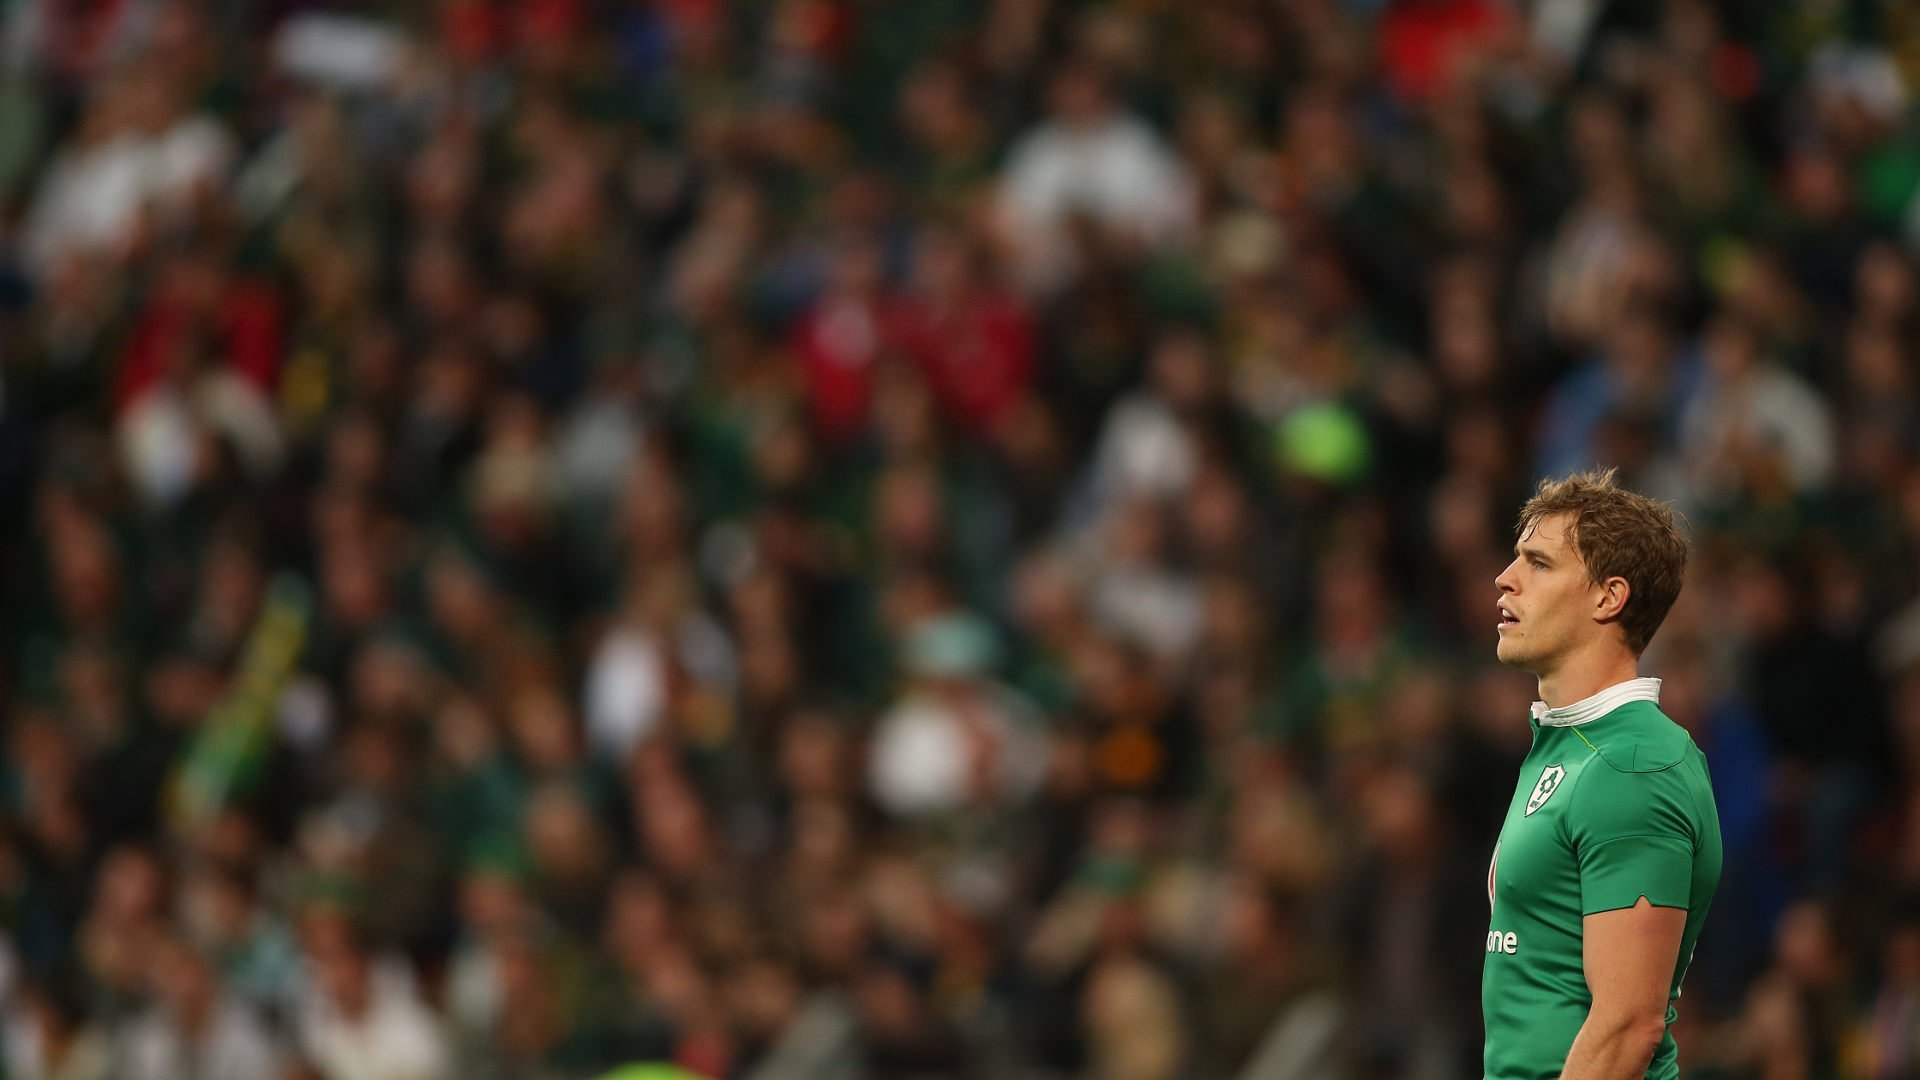 Andrew Trimble bids farewell to fans in emotional 'open letter'